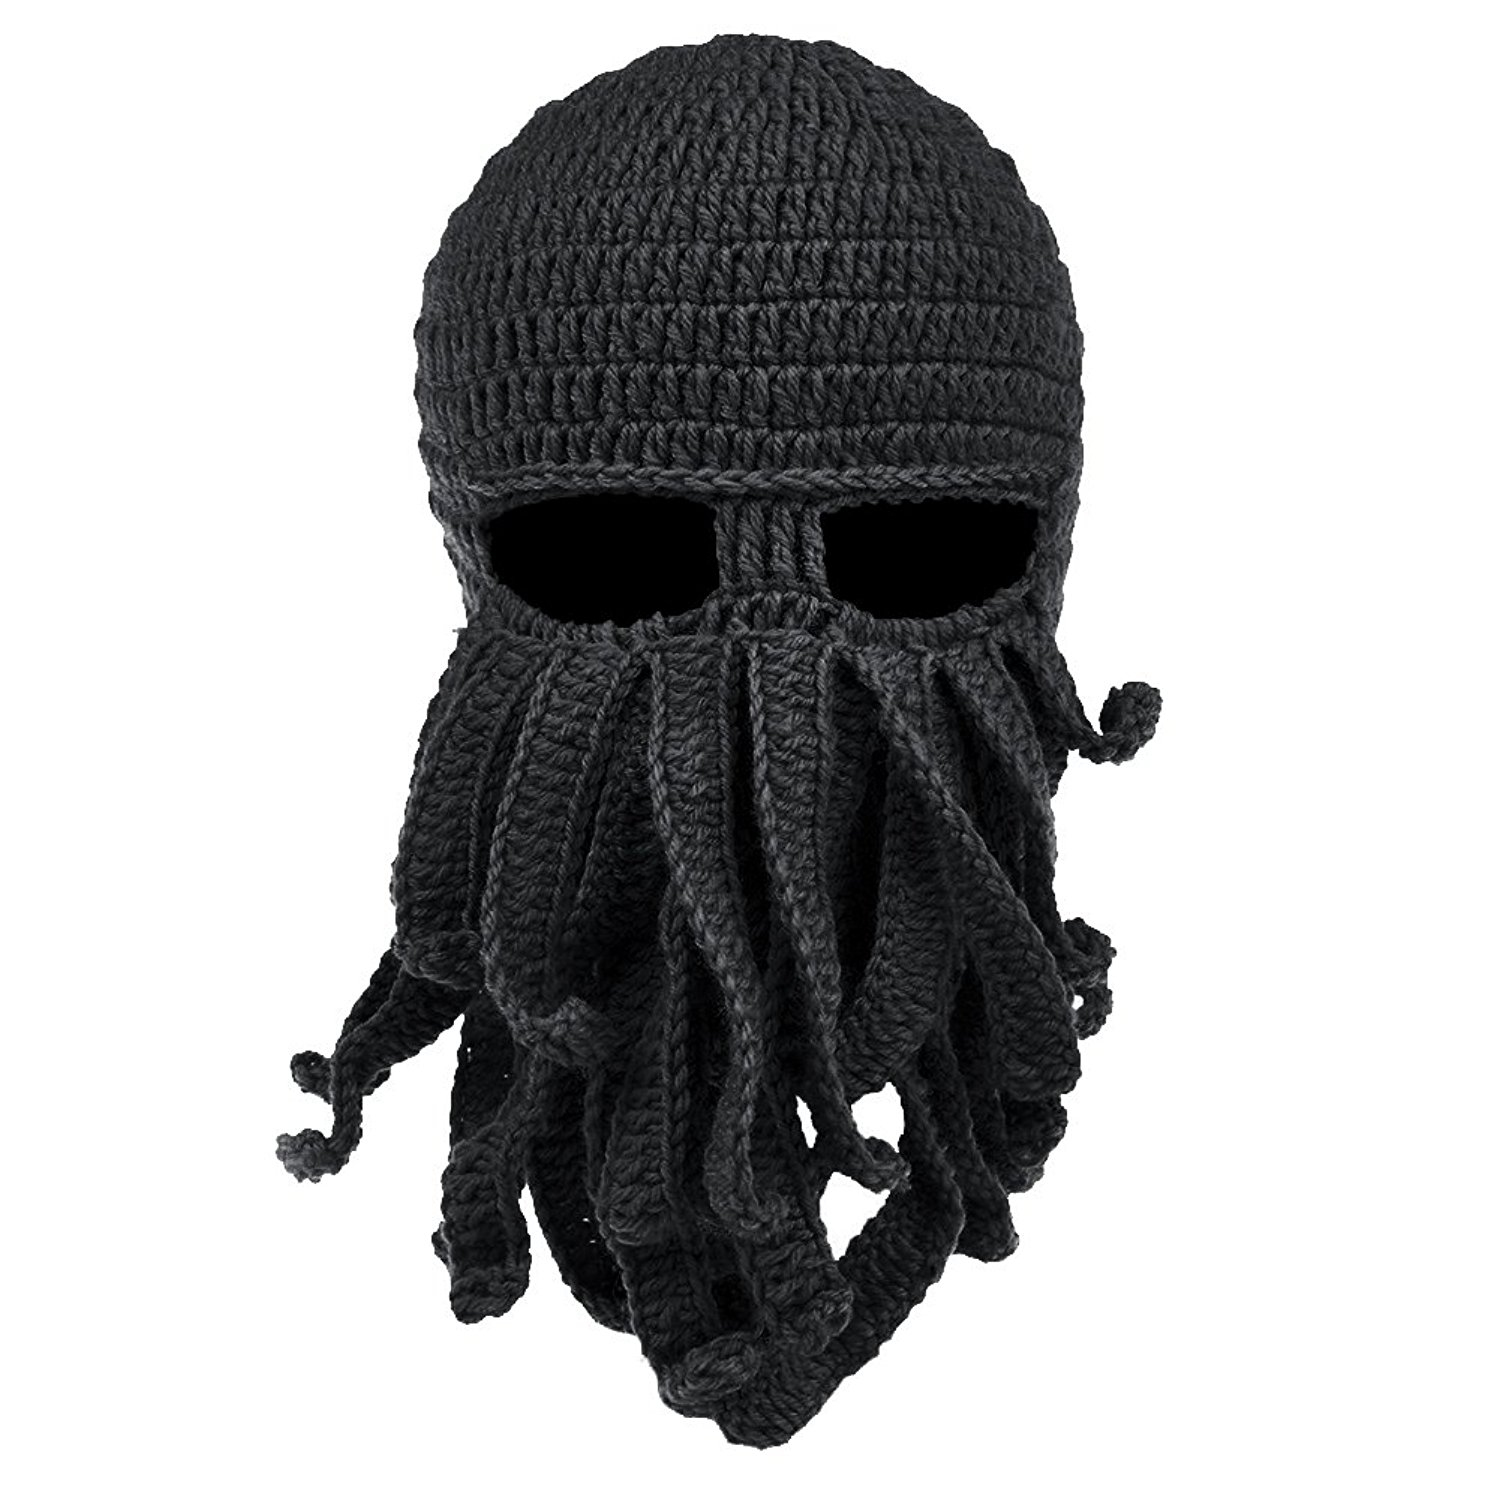 knit cap vbiger beard hat beanie hat knit hat winter warm octopus hat windproof boerzmh